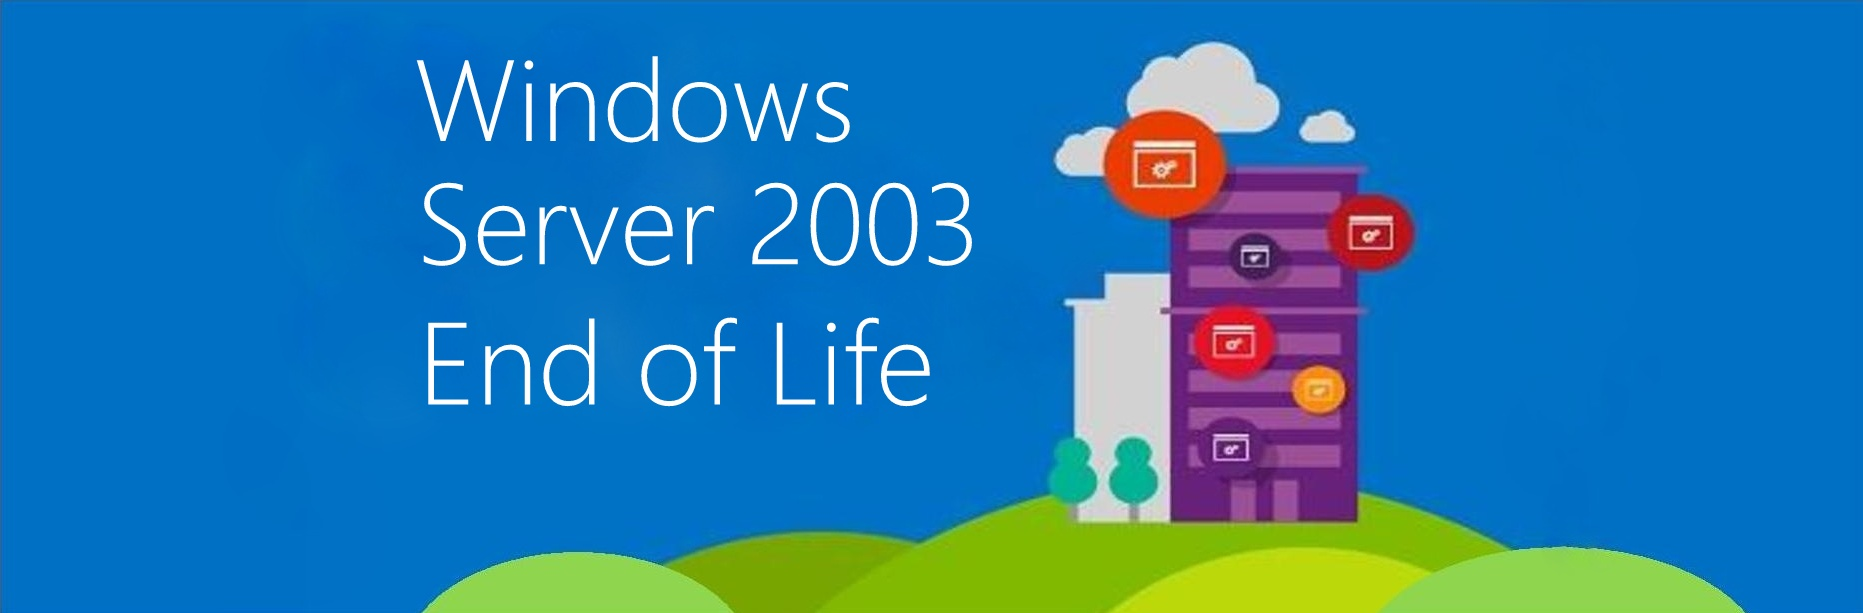 Fine del supporto di Windows Server 2003 da parte di Microsoft